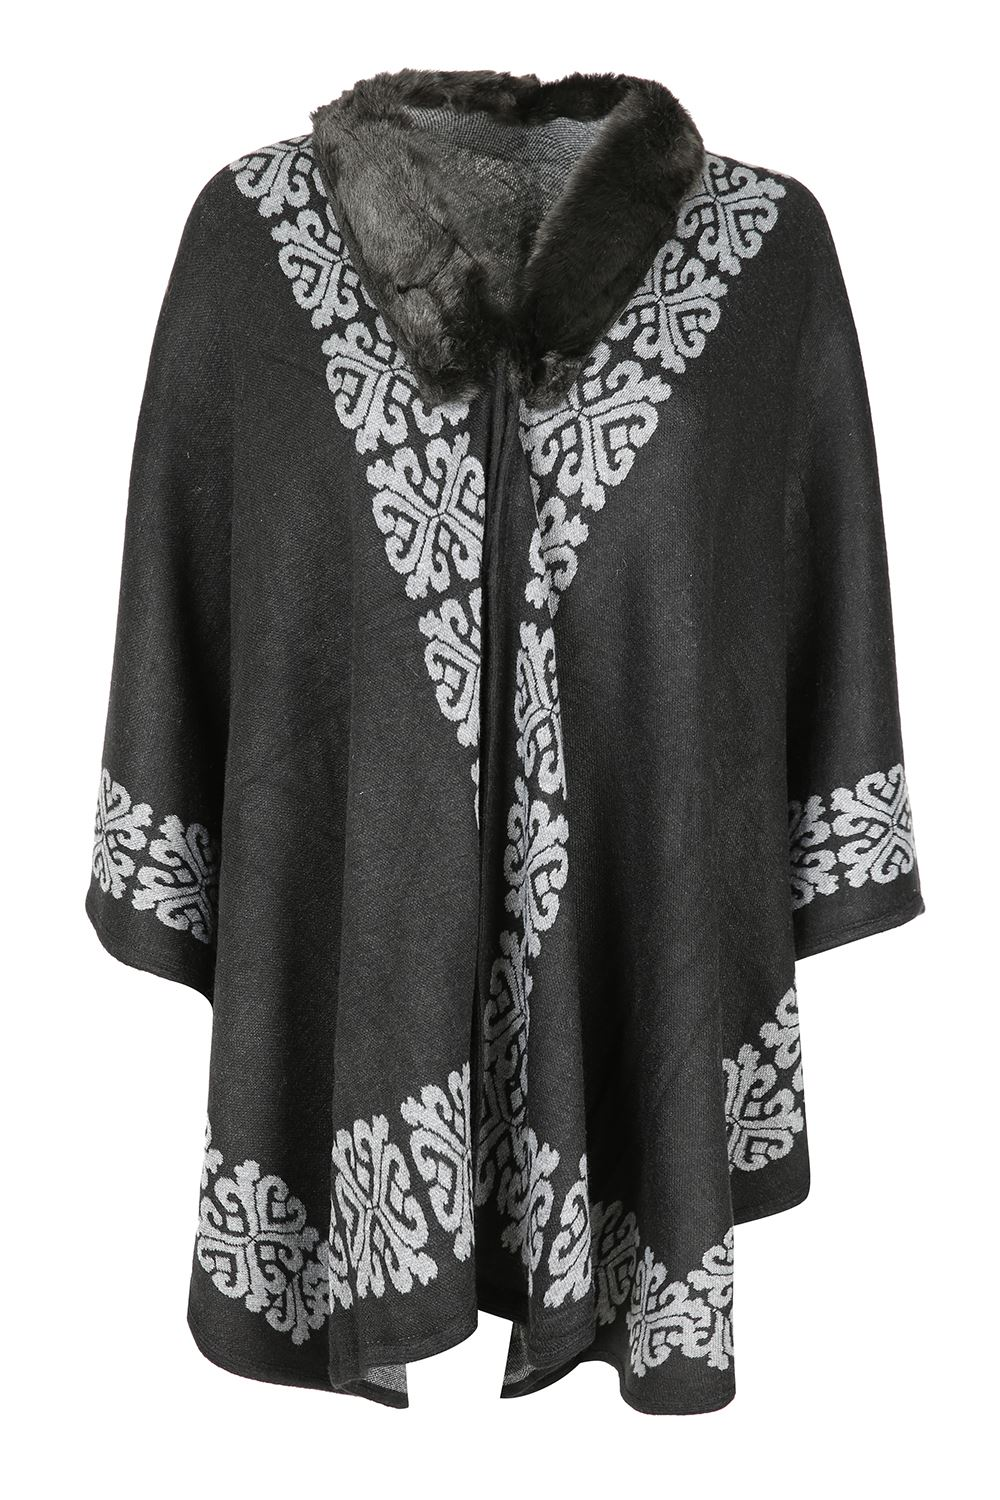 Women's Shawls and Wraps Add warmth to your everyday wear with one of these shawls. These shawls have a fashionable design, keeping you up-to-date with the latest trends.